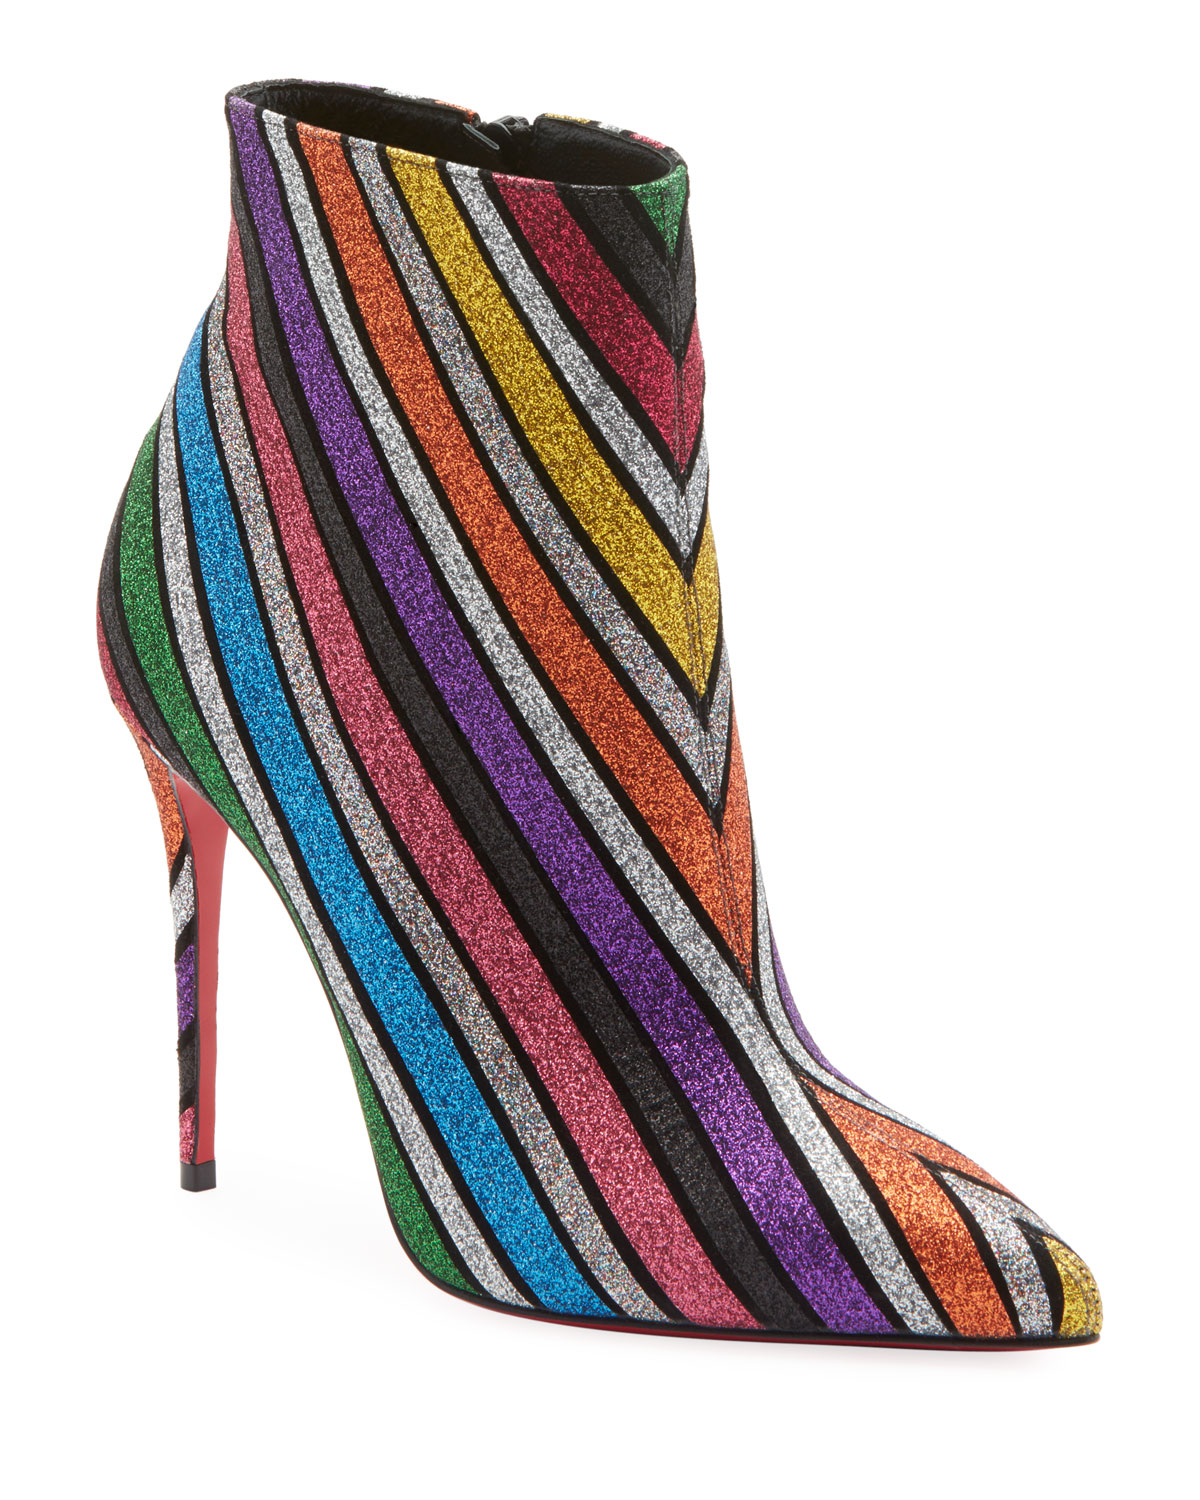 b8b5f4fe1042 Christian LouboutinSo Kate 100 Stripey Glitter Suede Red Sole Booties